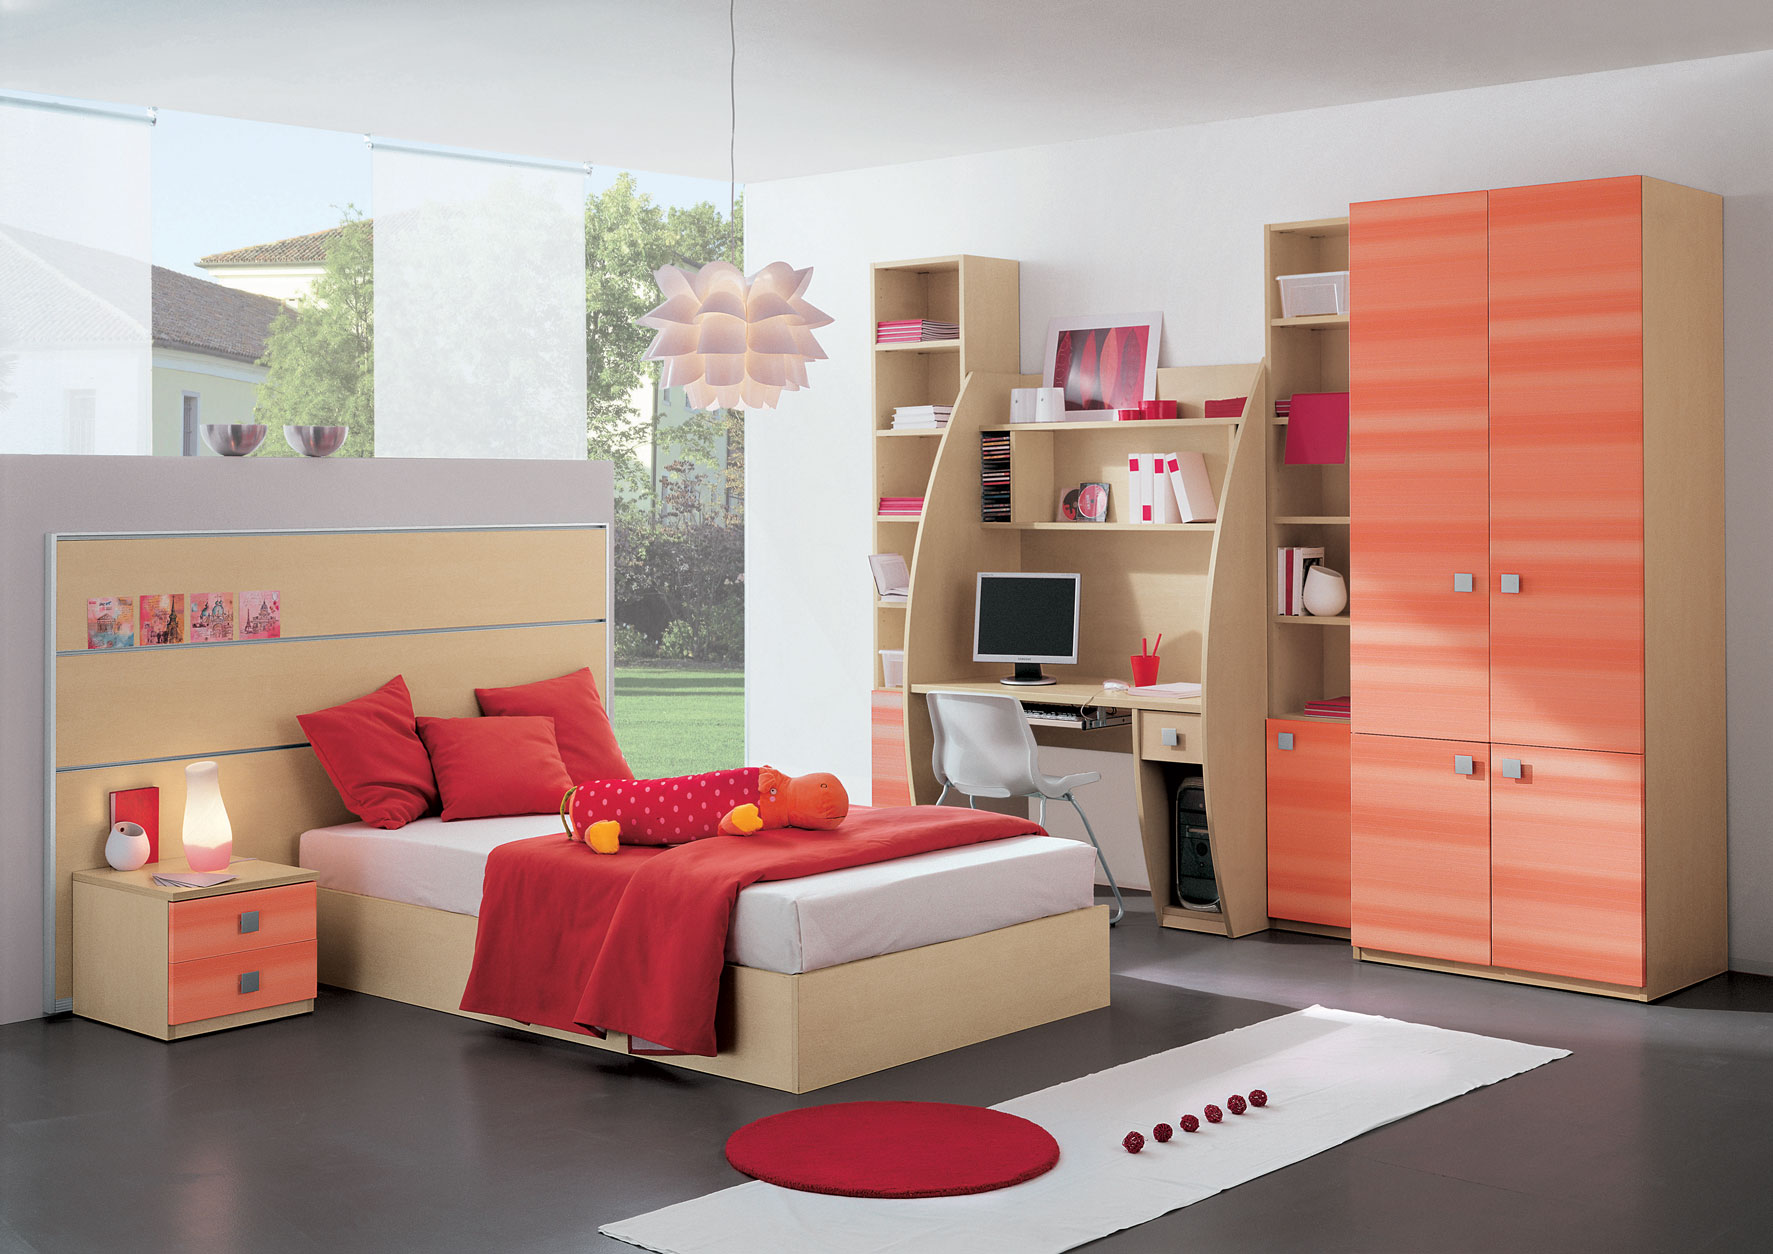 Kids Bedroom Design Ideas 1773 x 1254